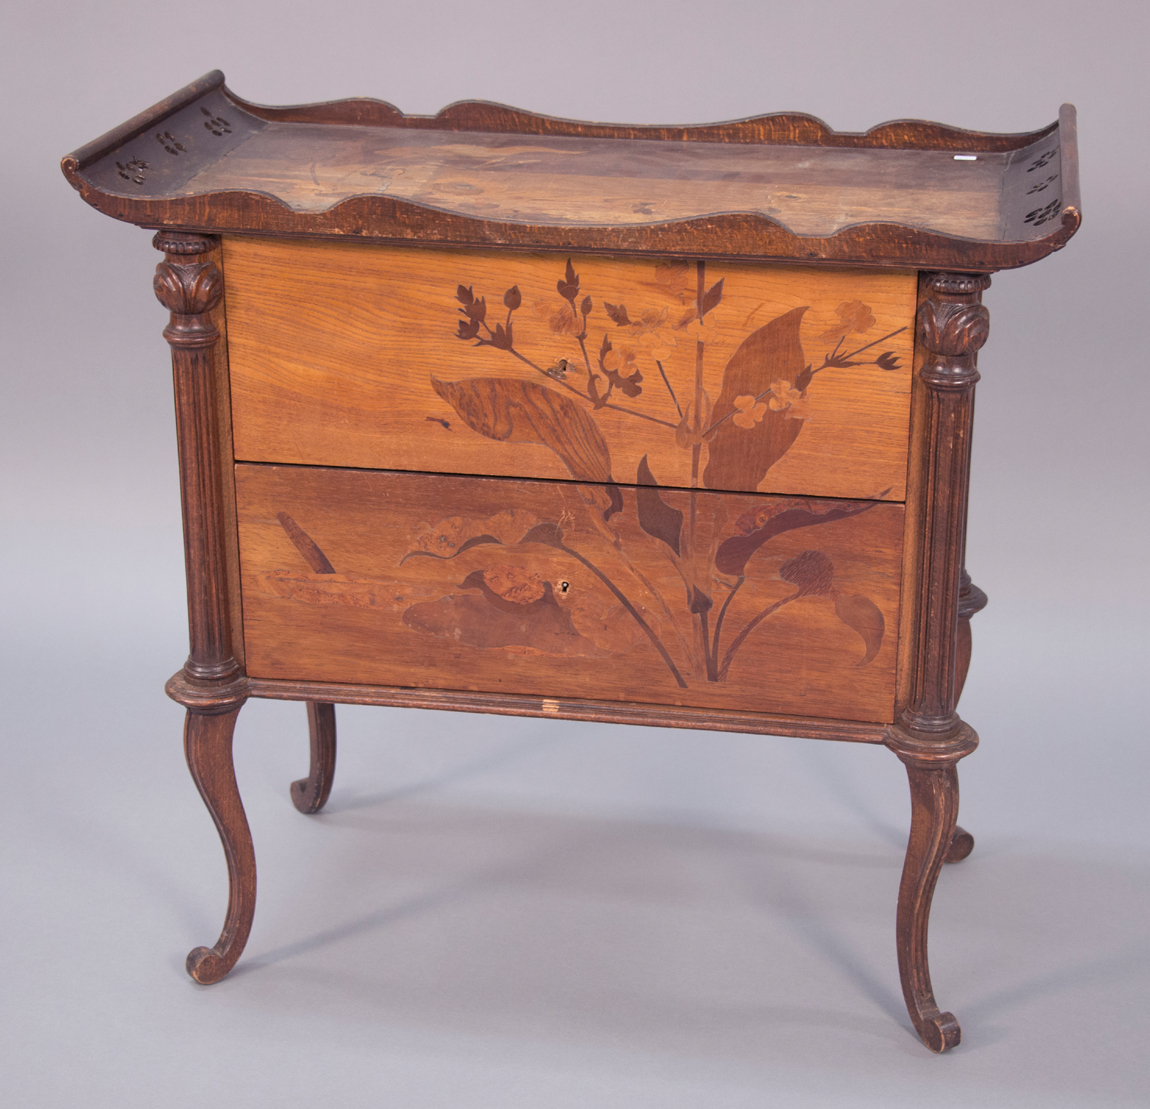 Art Nouveau cabinet with floral inlays, signed Galle,<br>height 30 inches, $ 5,000 ($ 2/4,000).